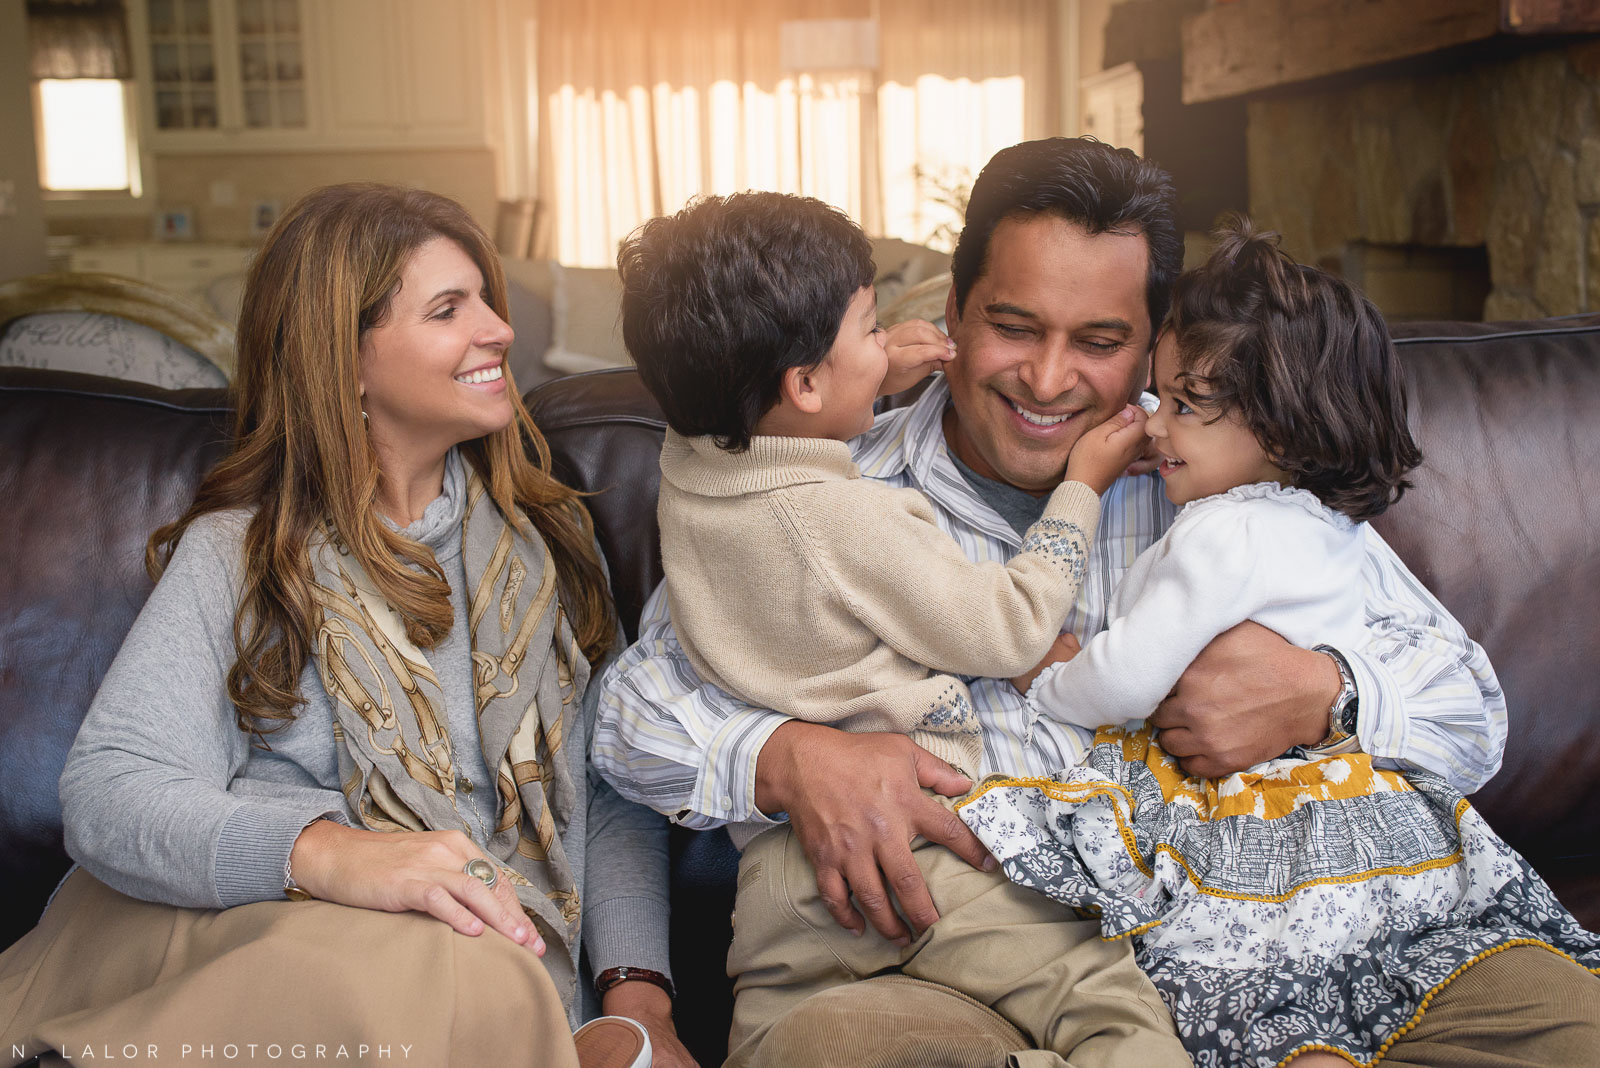 Happy laughing family portrait by N. Lalor Photography. Greenwich CT photographer.